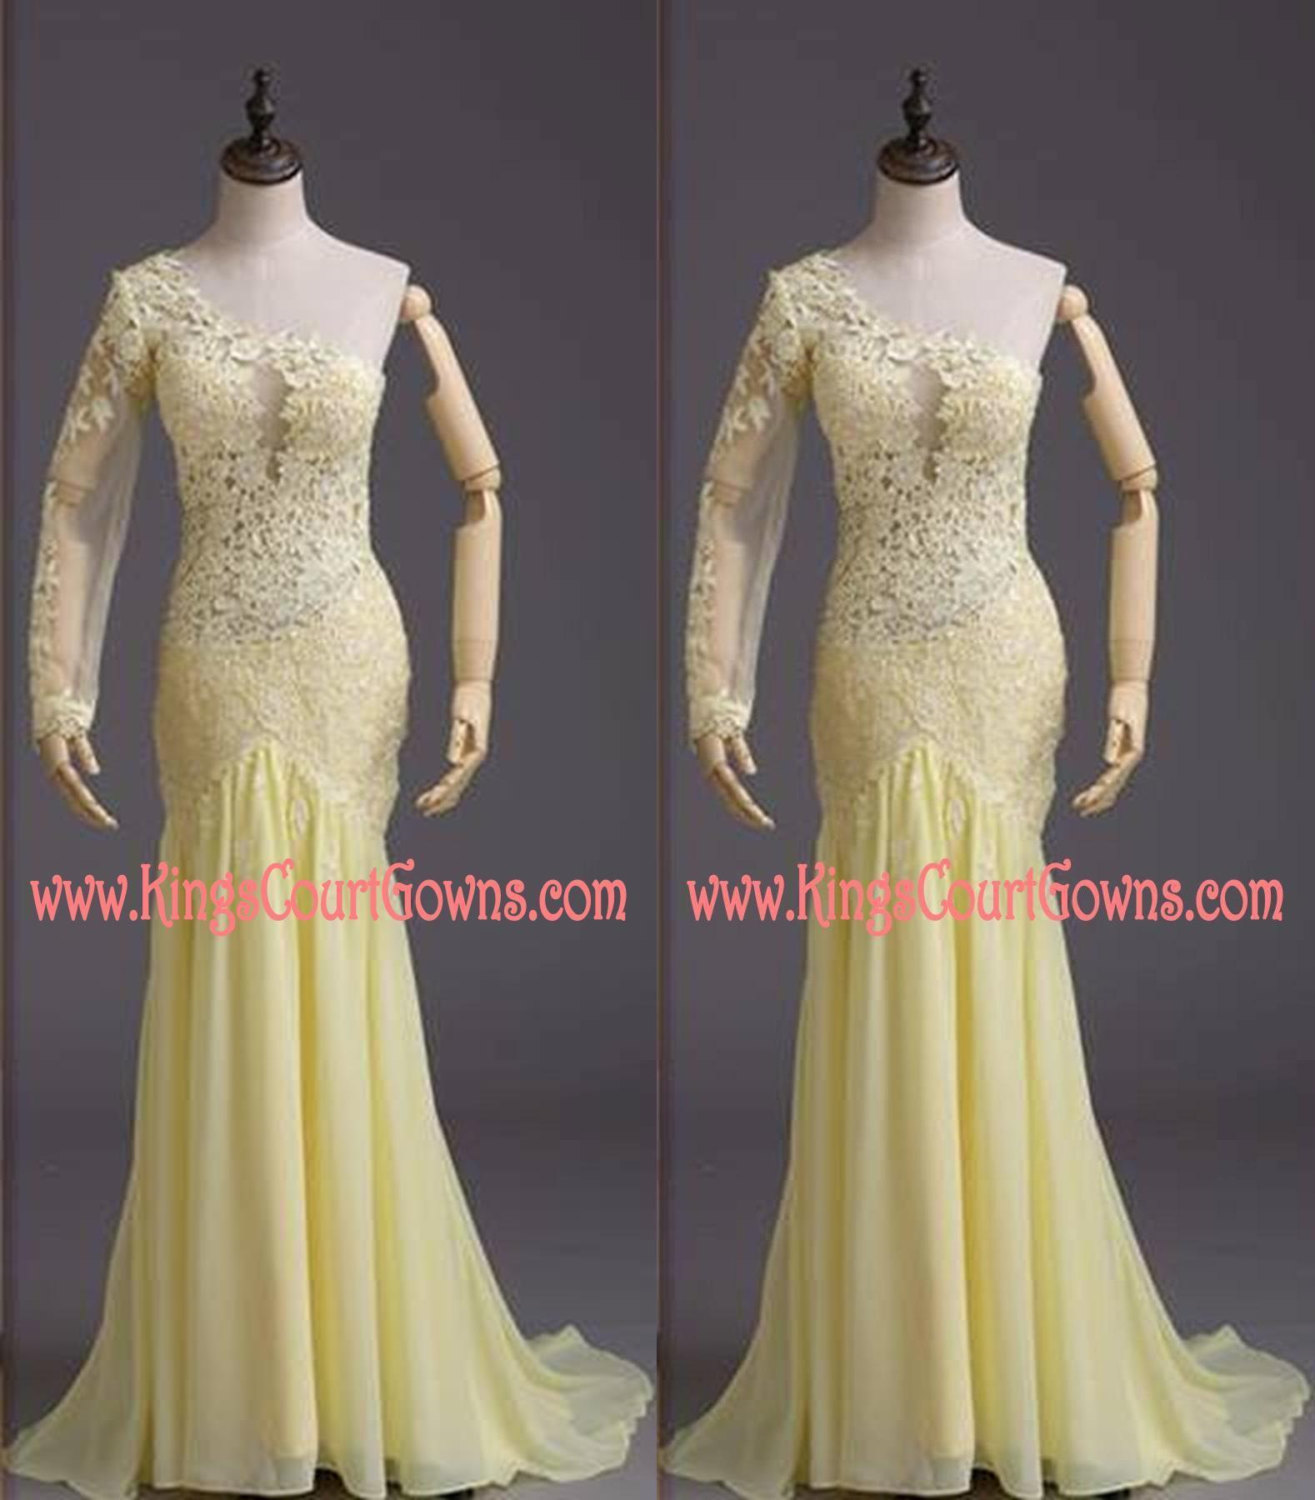 Replica one shoulder long sleeve yellow lace chiffon prom evening pageant dress gown